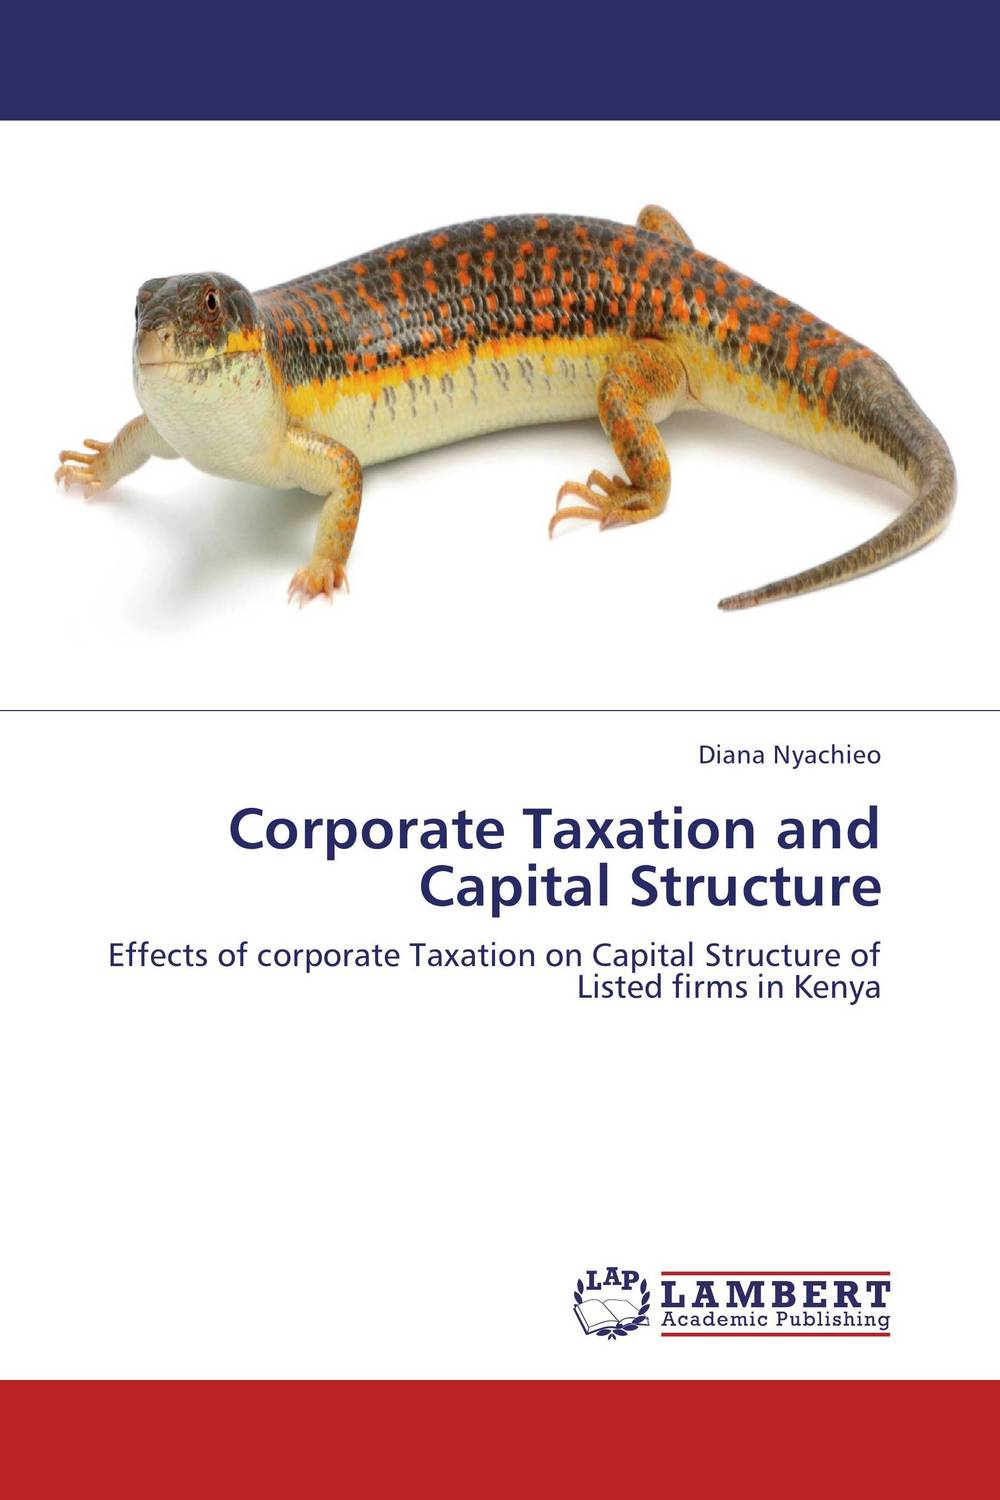 Corporate Taxation and Capital Structure women entrepreneurship in kenya s firms a demographic perspective